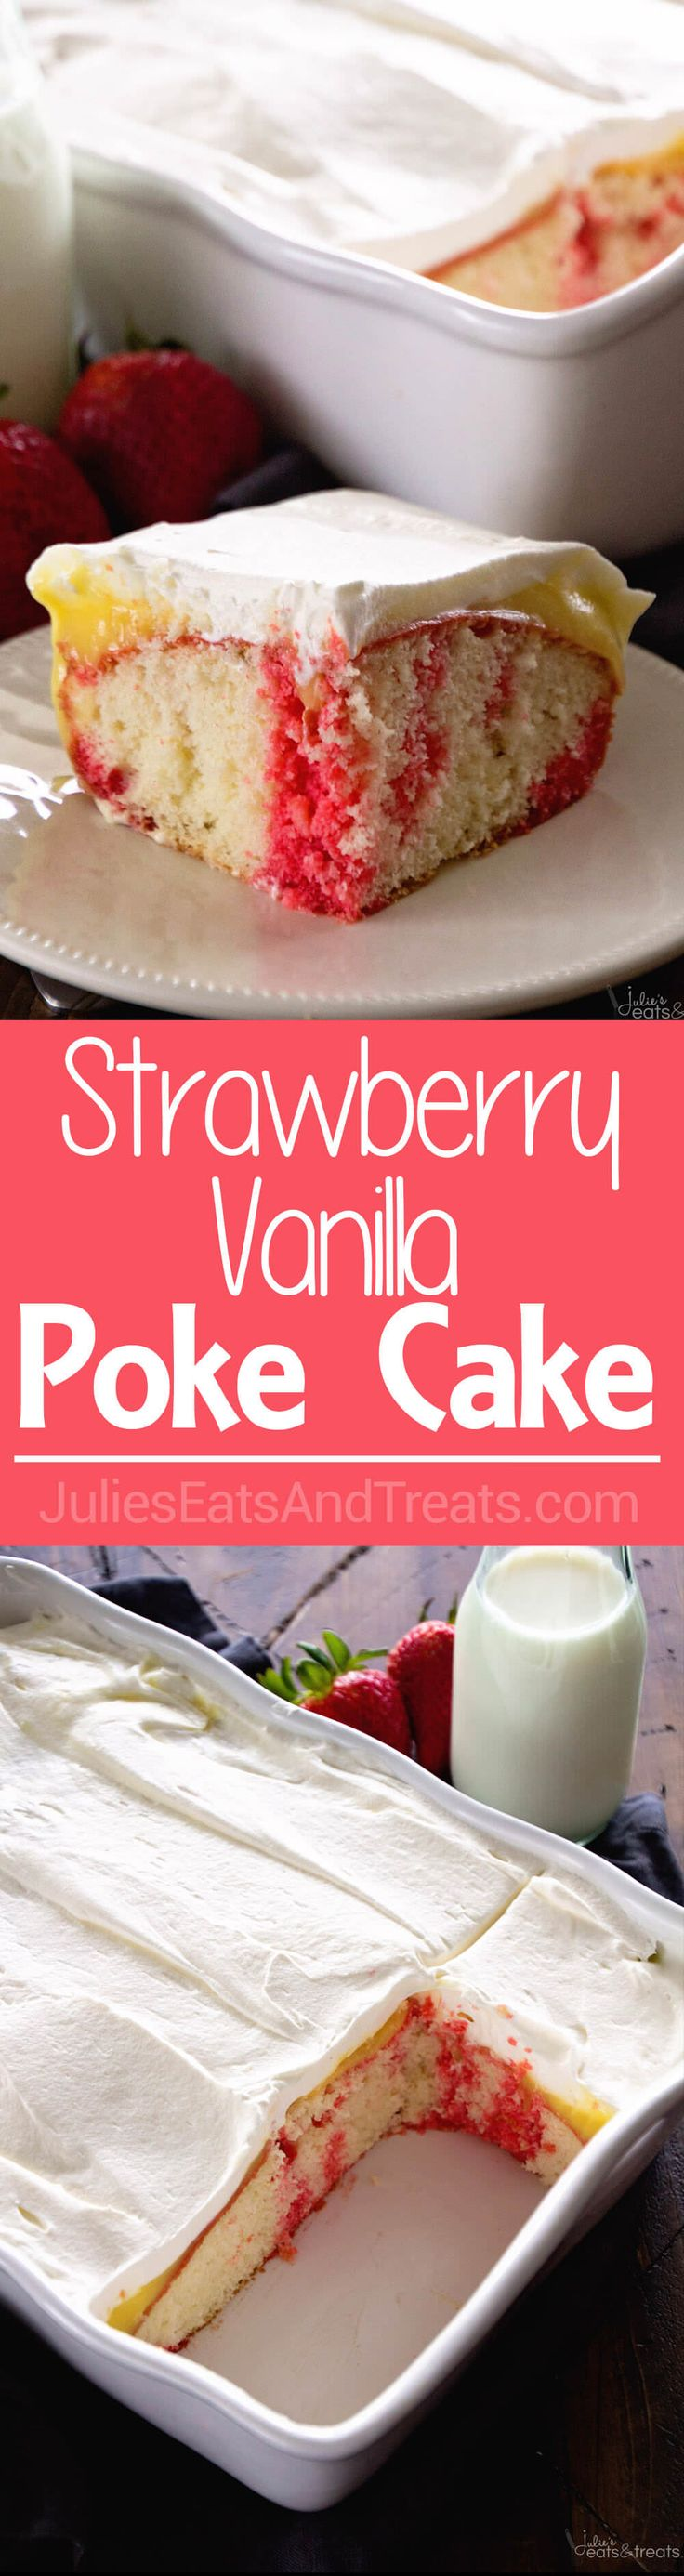 Strawberry Vanilla Poke Cake ~ Quick & Easy, But Impressive for Guests! This Light Cake Starts with a Box Mix and is Topped with Strawberry Jell-O, Vanilla Pudding and Cool Whip! Perfect Comfort Food Dessert! ~ http://www.julieseatsandtreats.com